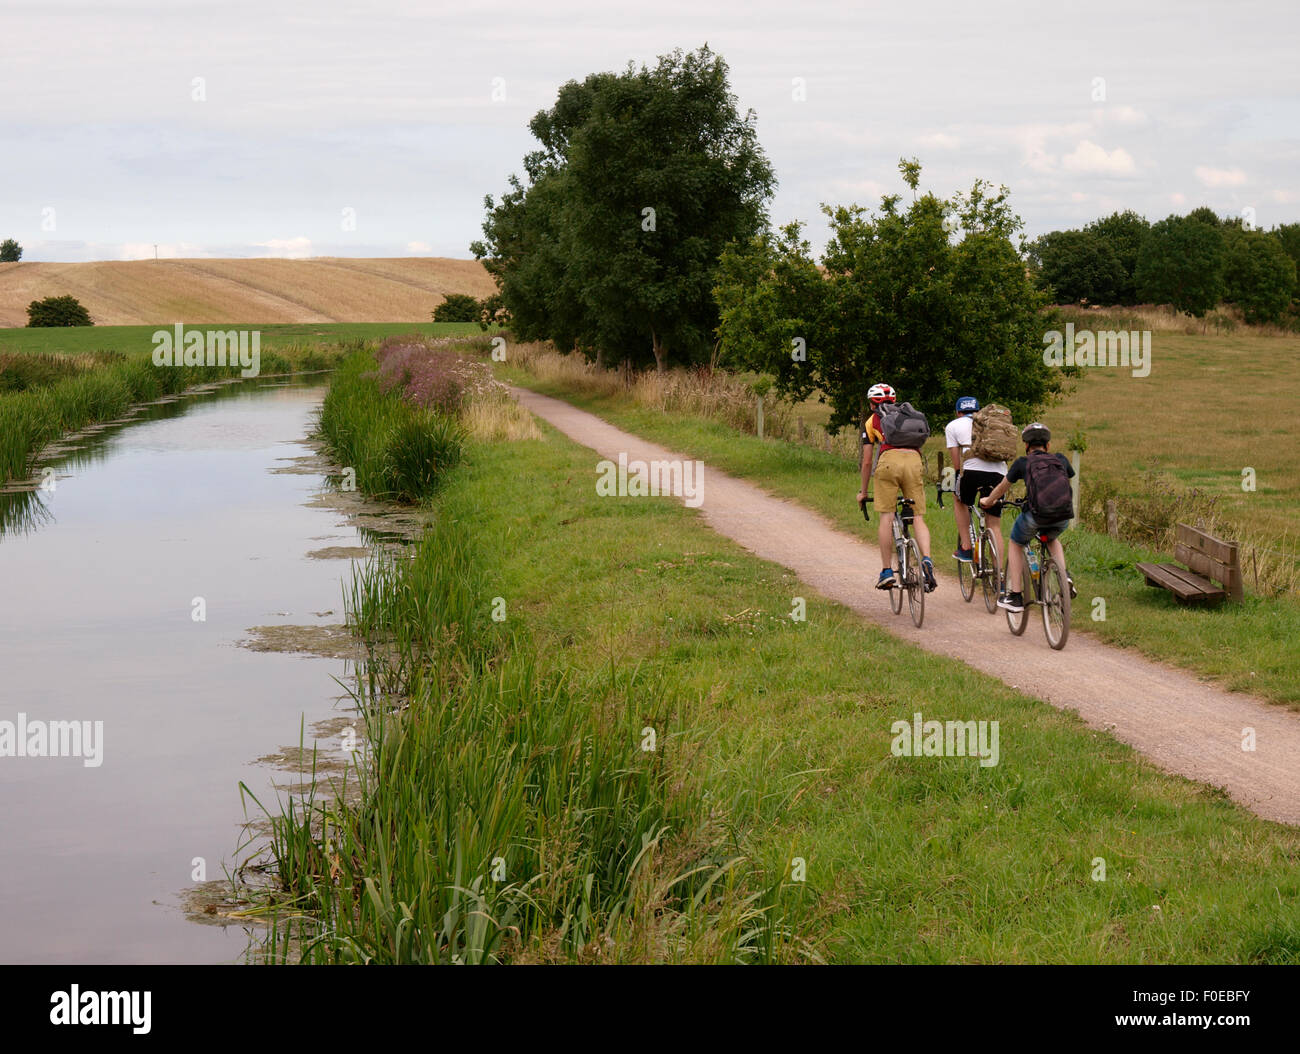 Teens cycling along the towpath of the Bridgwater and Taunton Canal, Taunton, Somerset, UK - Stock Image